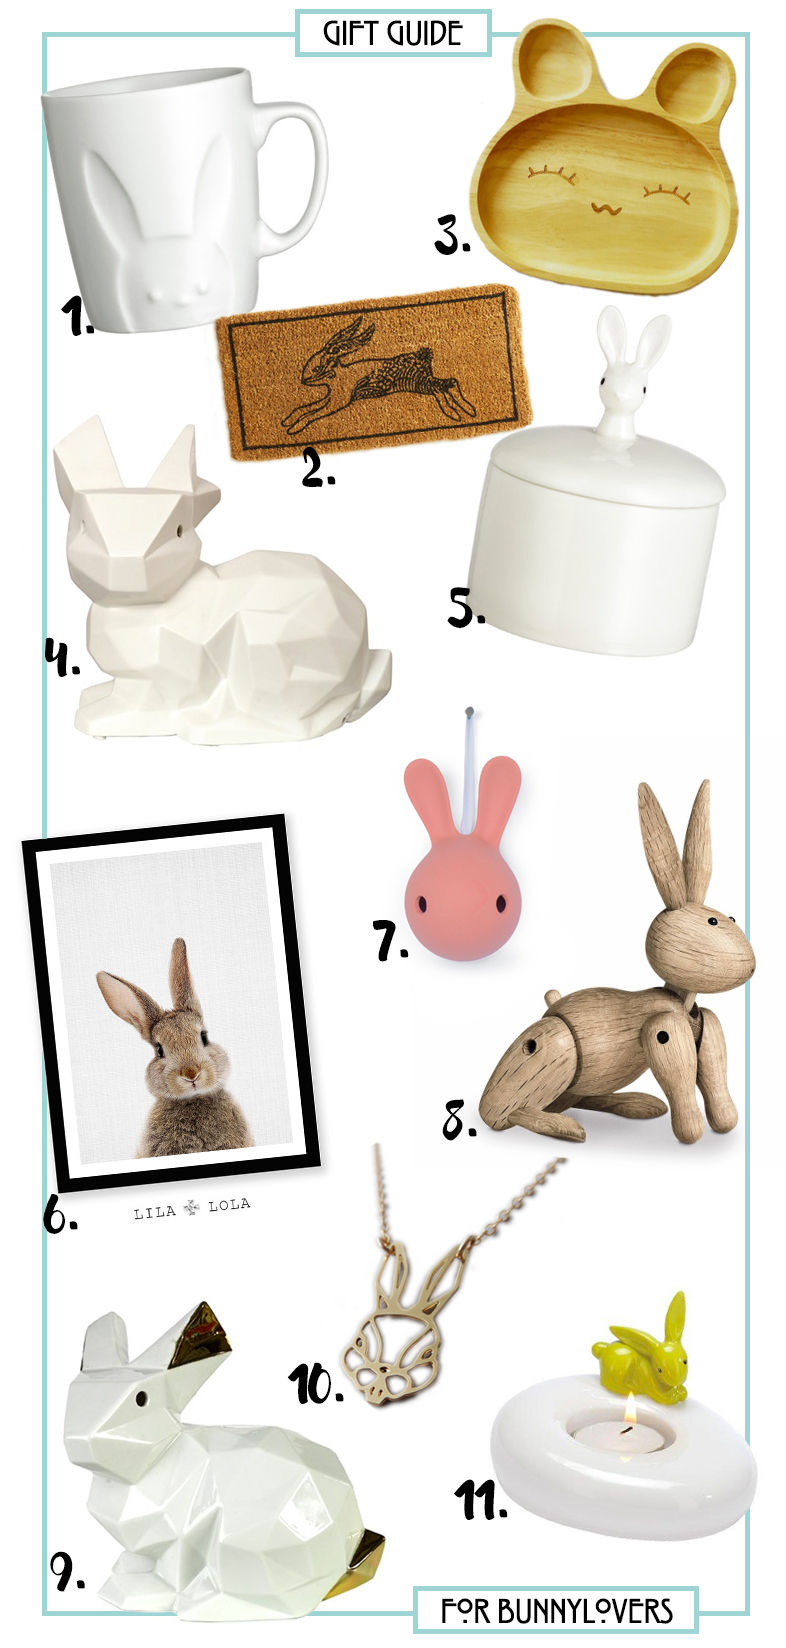 Gift guide for Bunny lovers